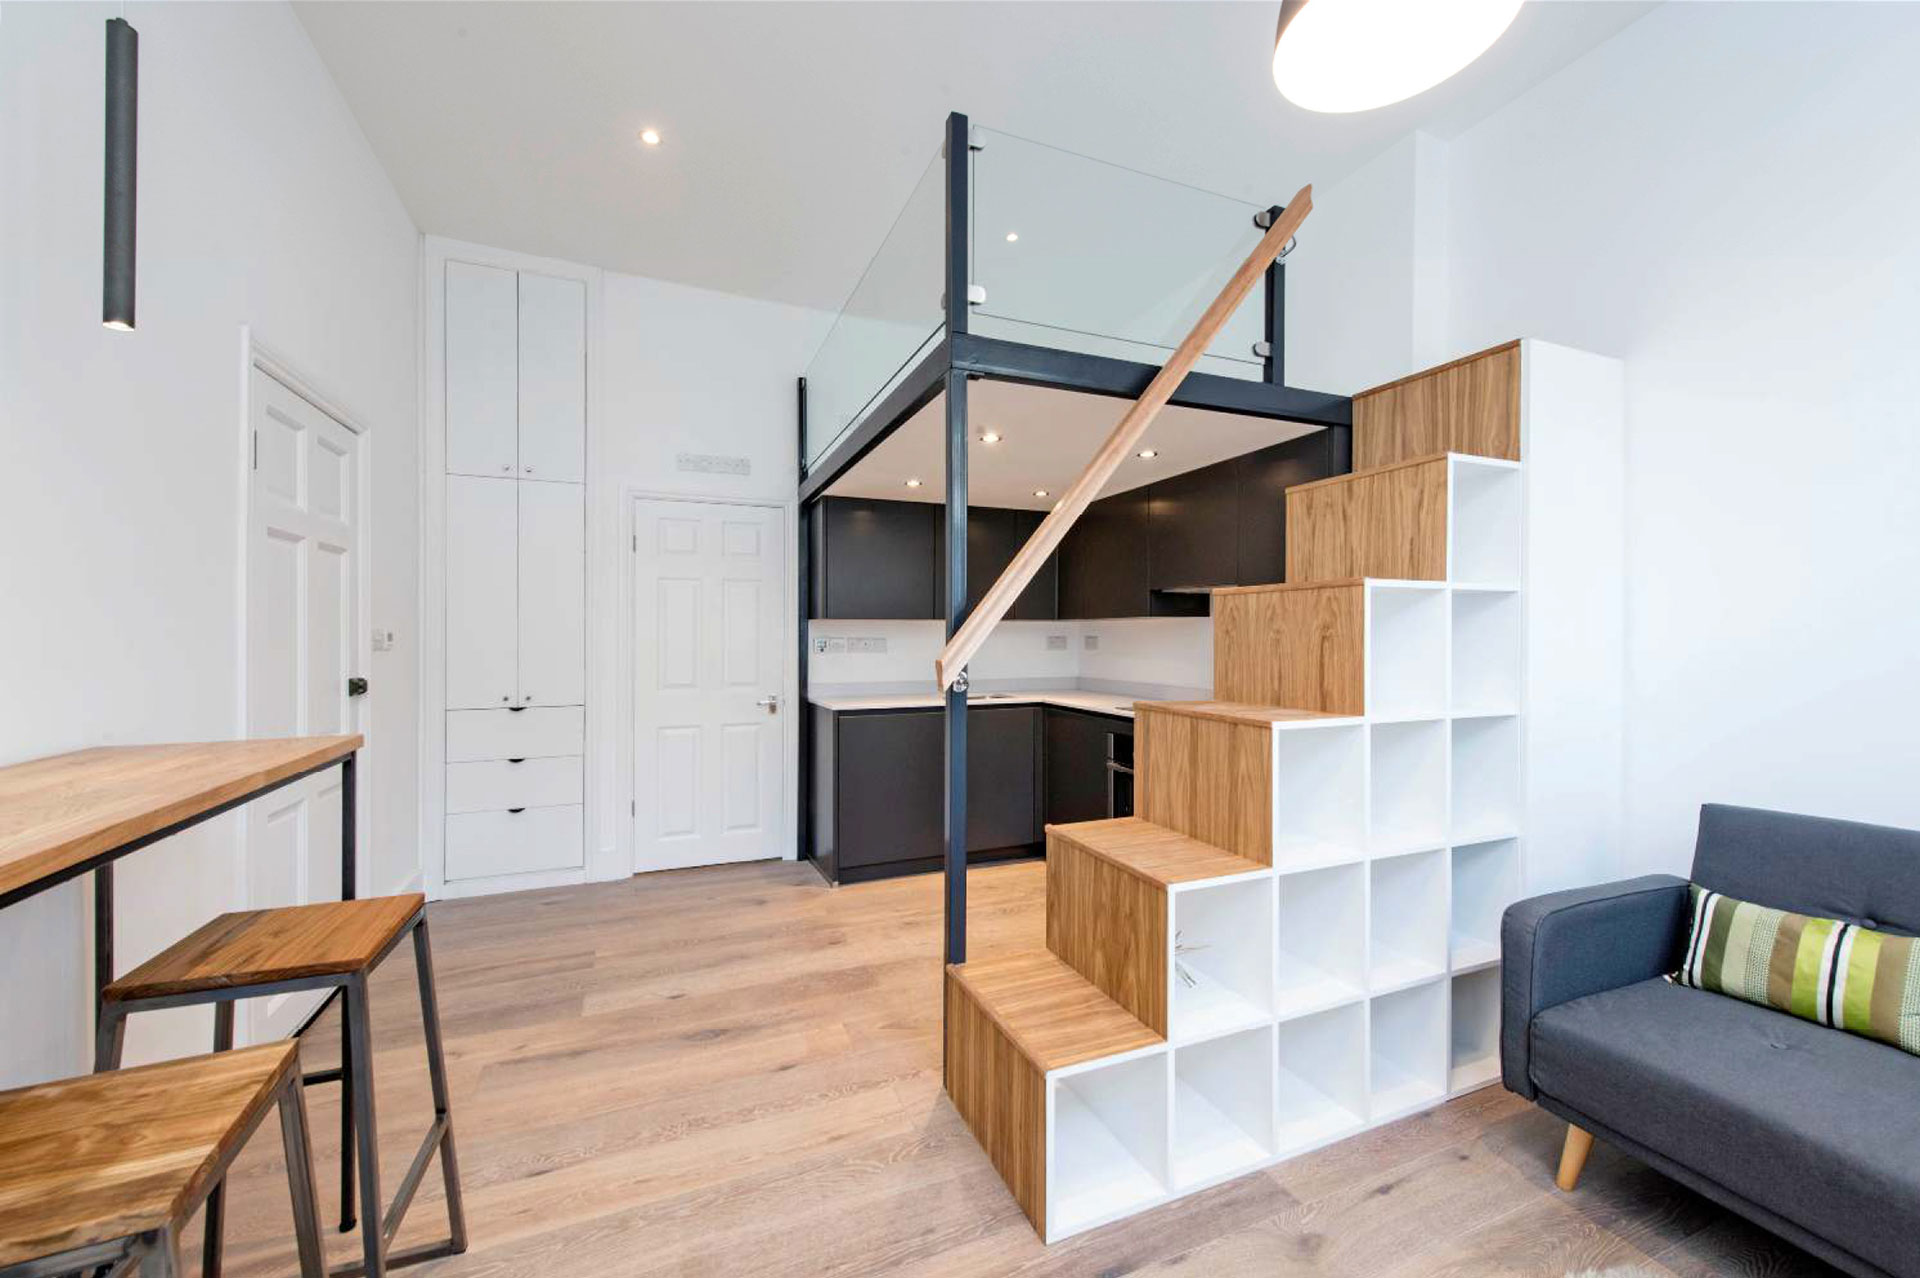 Contemporary mezzanine loft